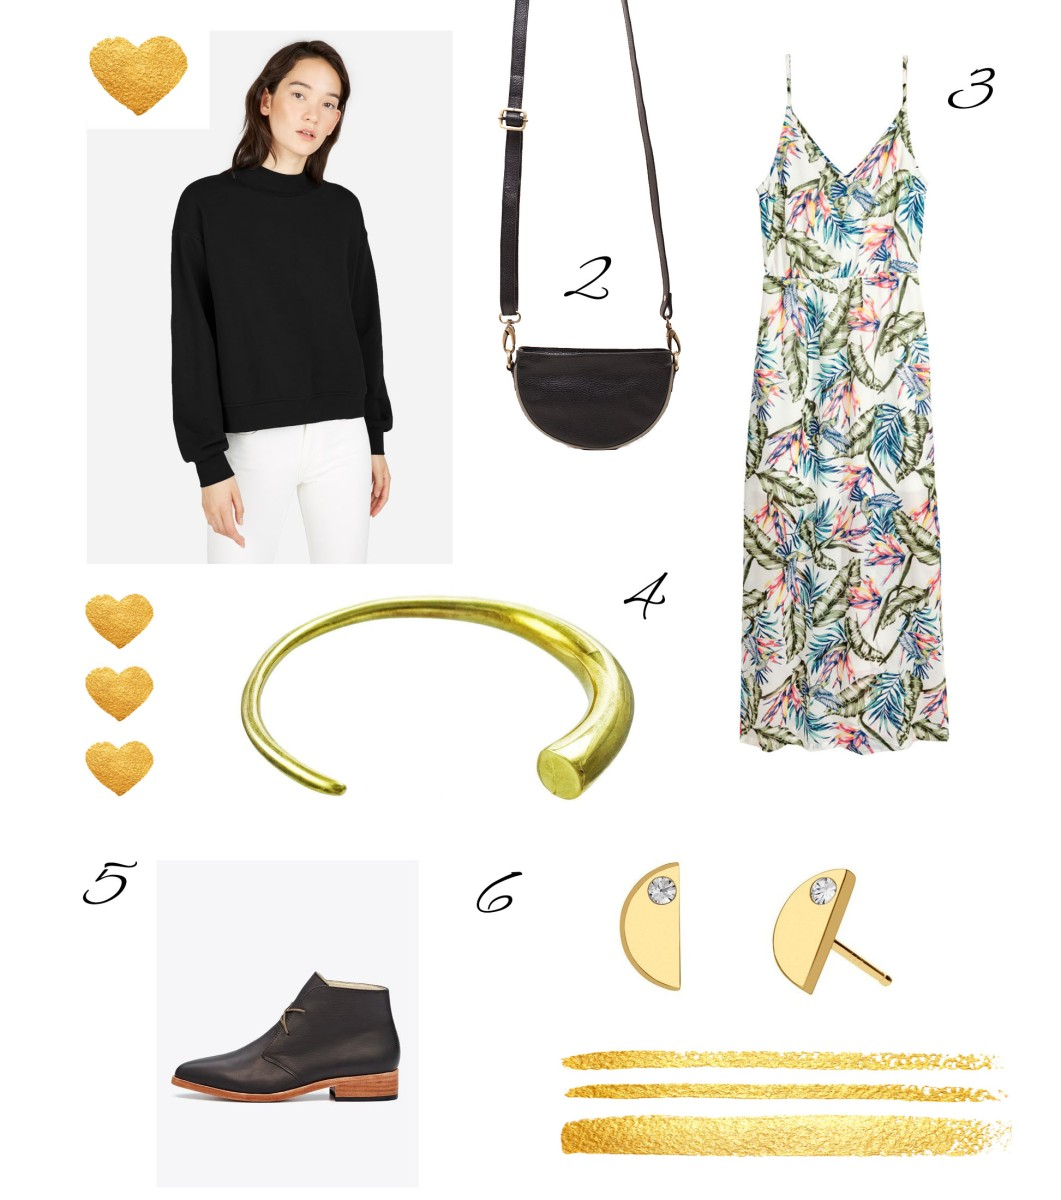 Thursday's ethical style